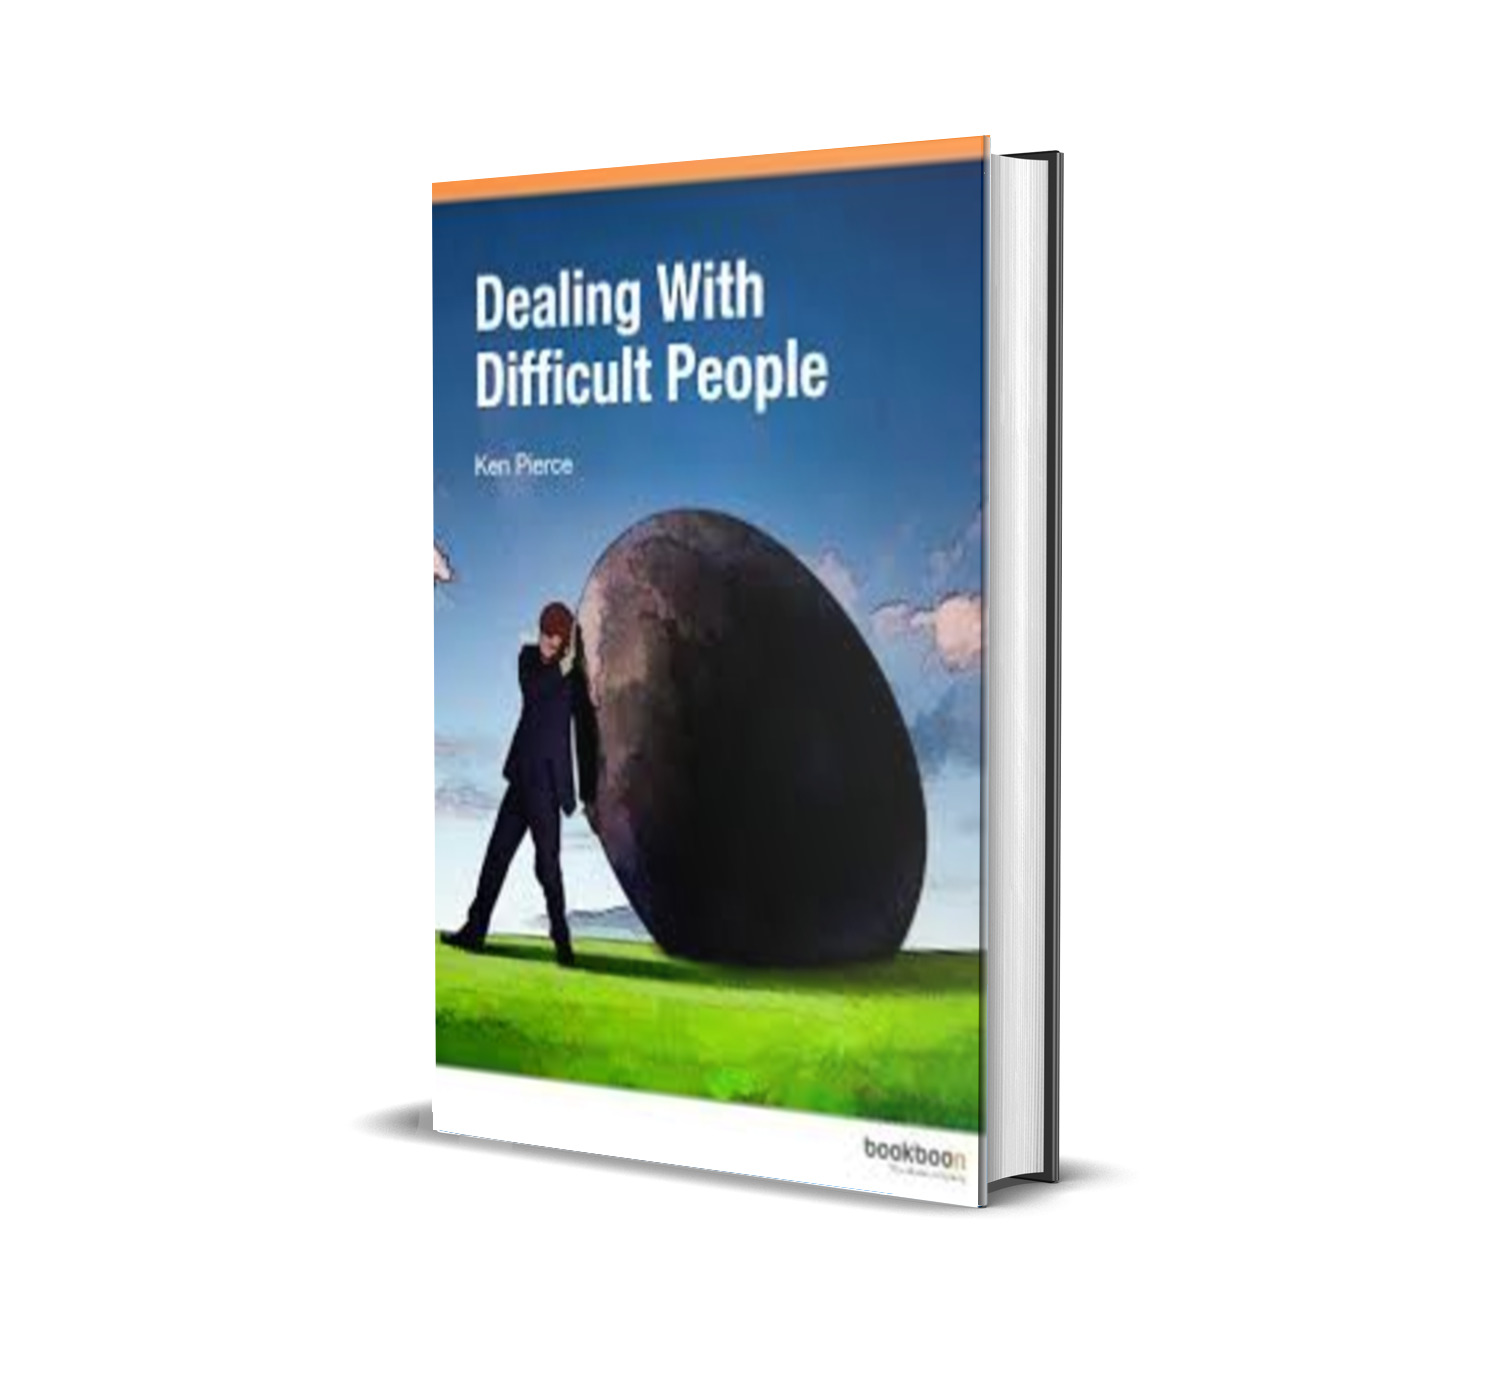 DEALING WITH DIFFICULT PEOPLE - Ken pierce